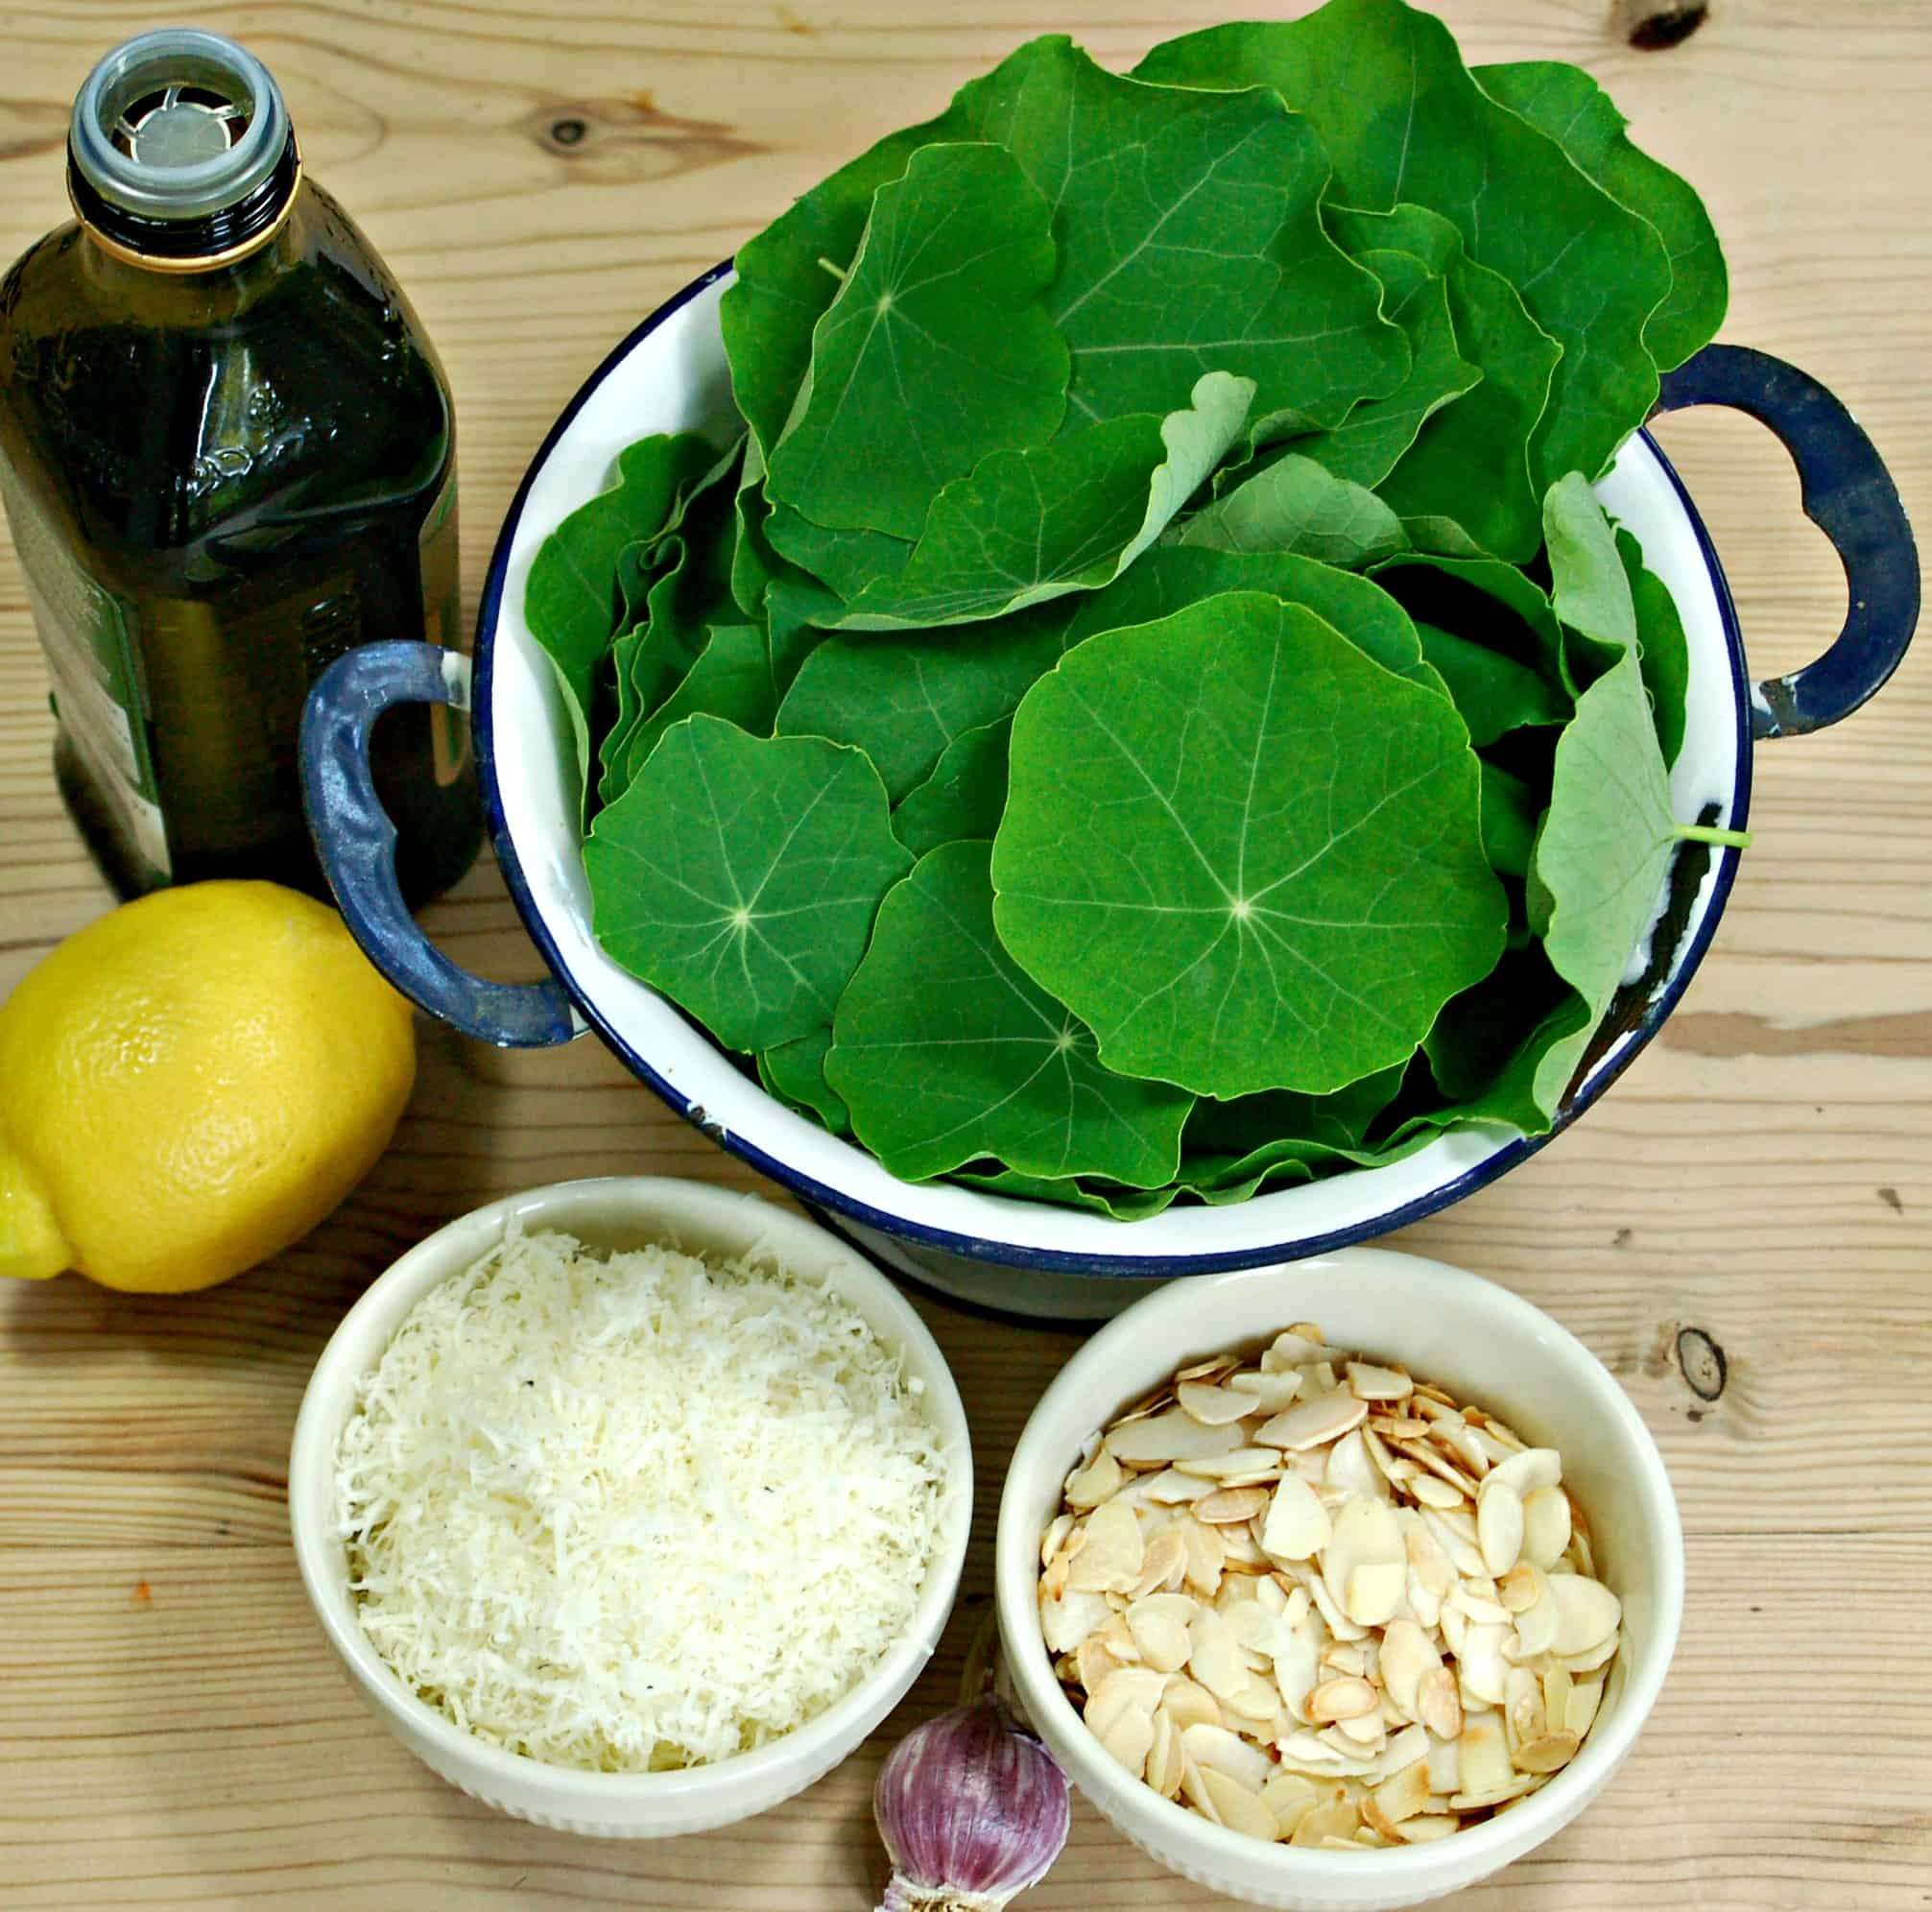 How to Make Nasturtium Pesto